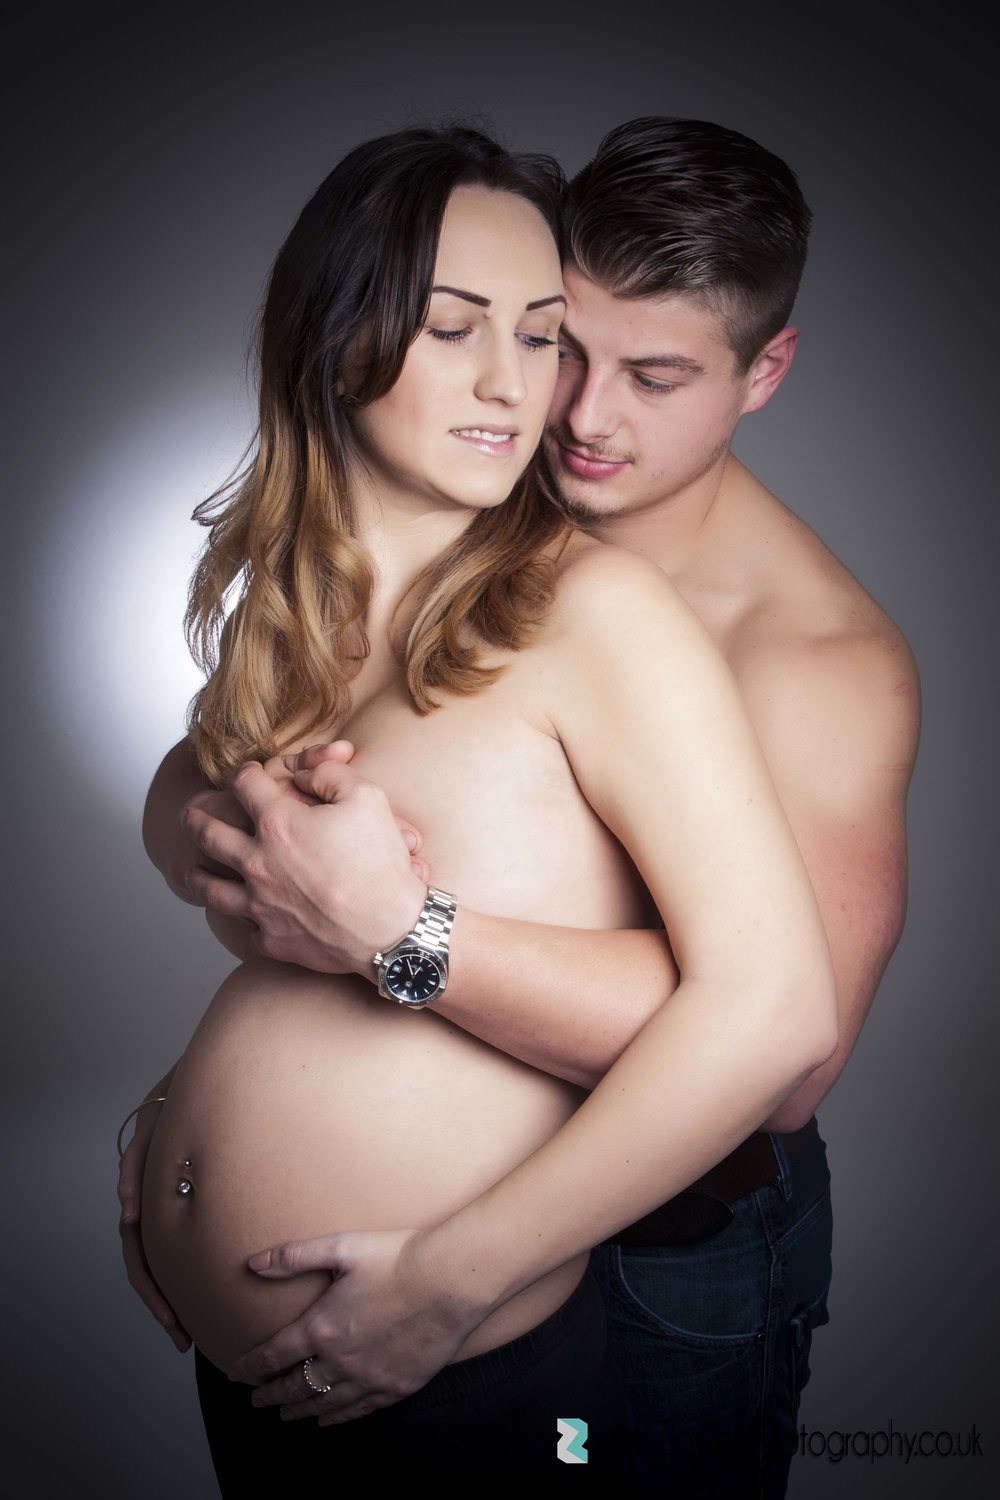 pregnancy-bump-couple-photoshoot-topless.jpg